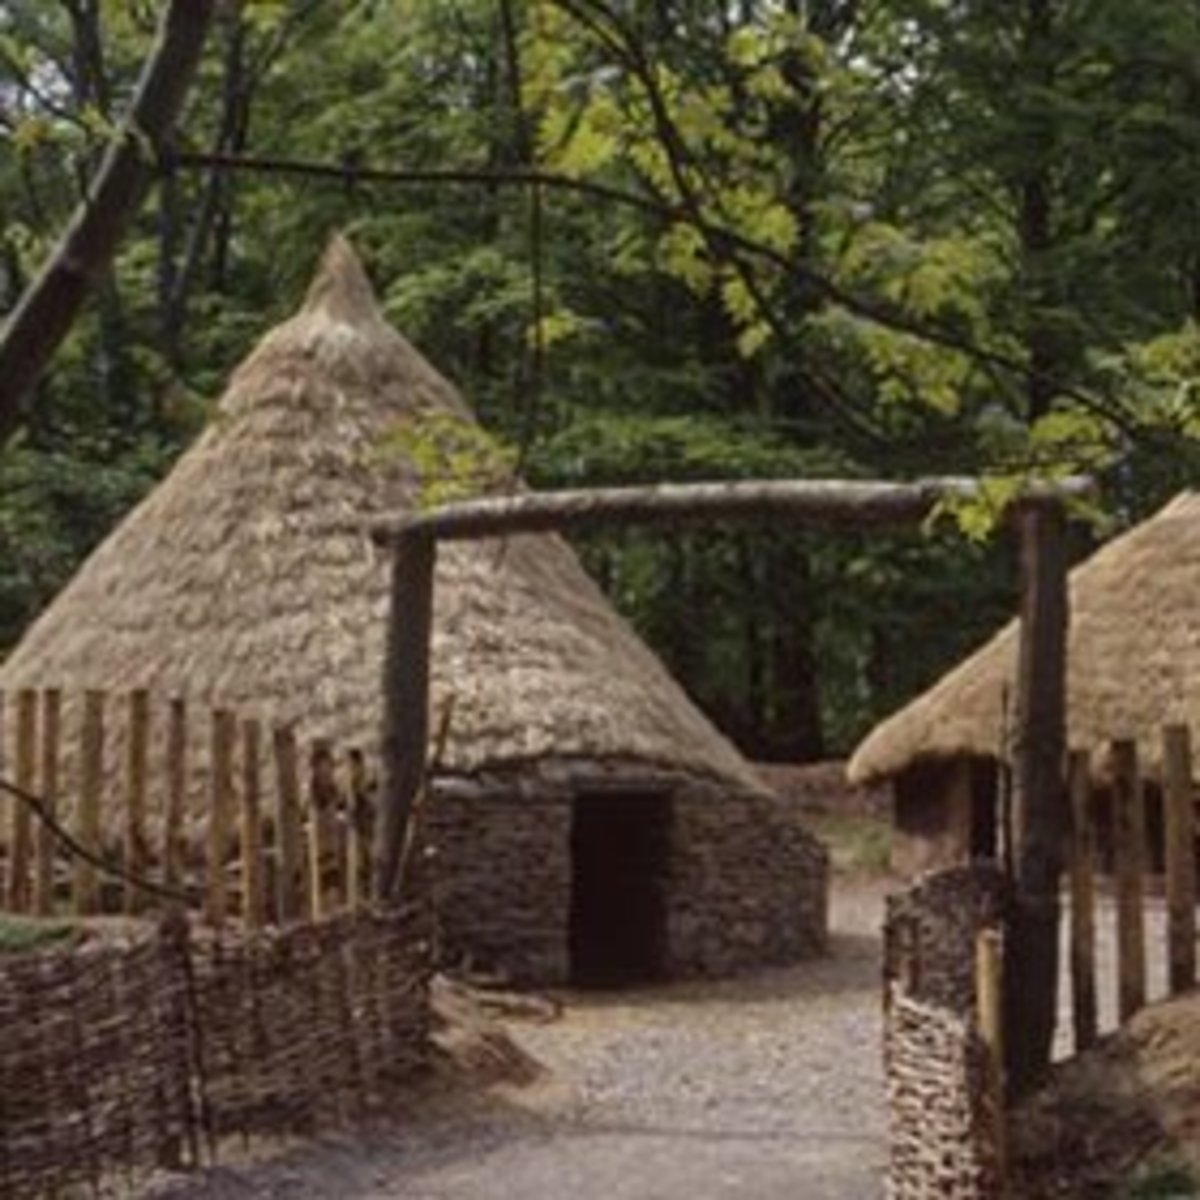 Reconstruction of round houses of the Picts in Scotland.